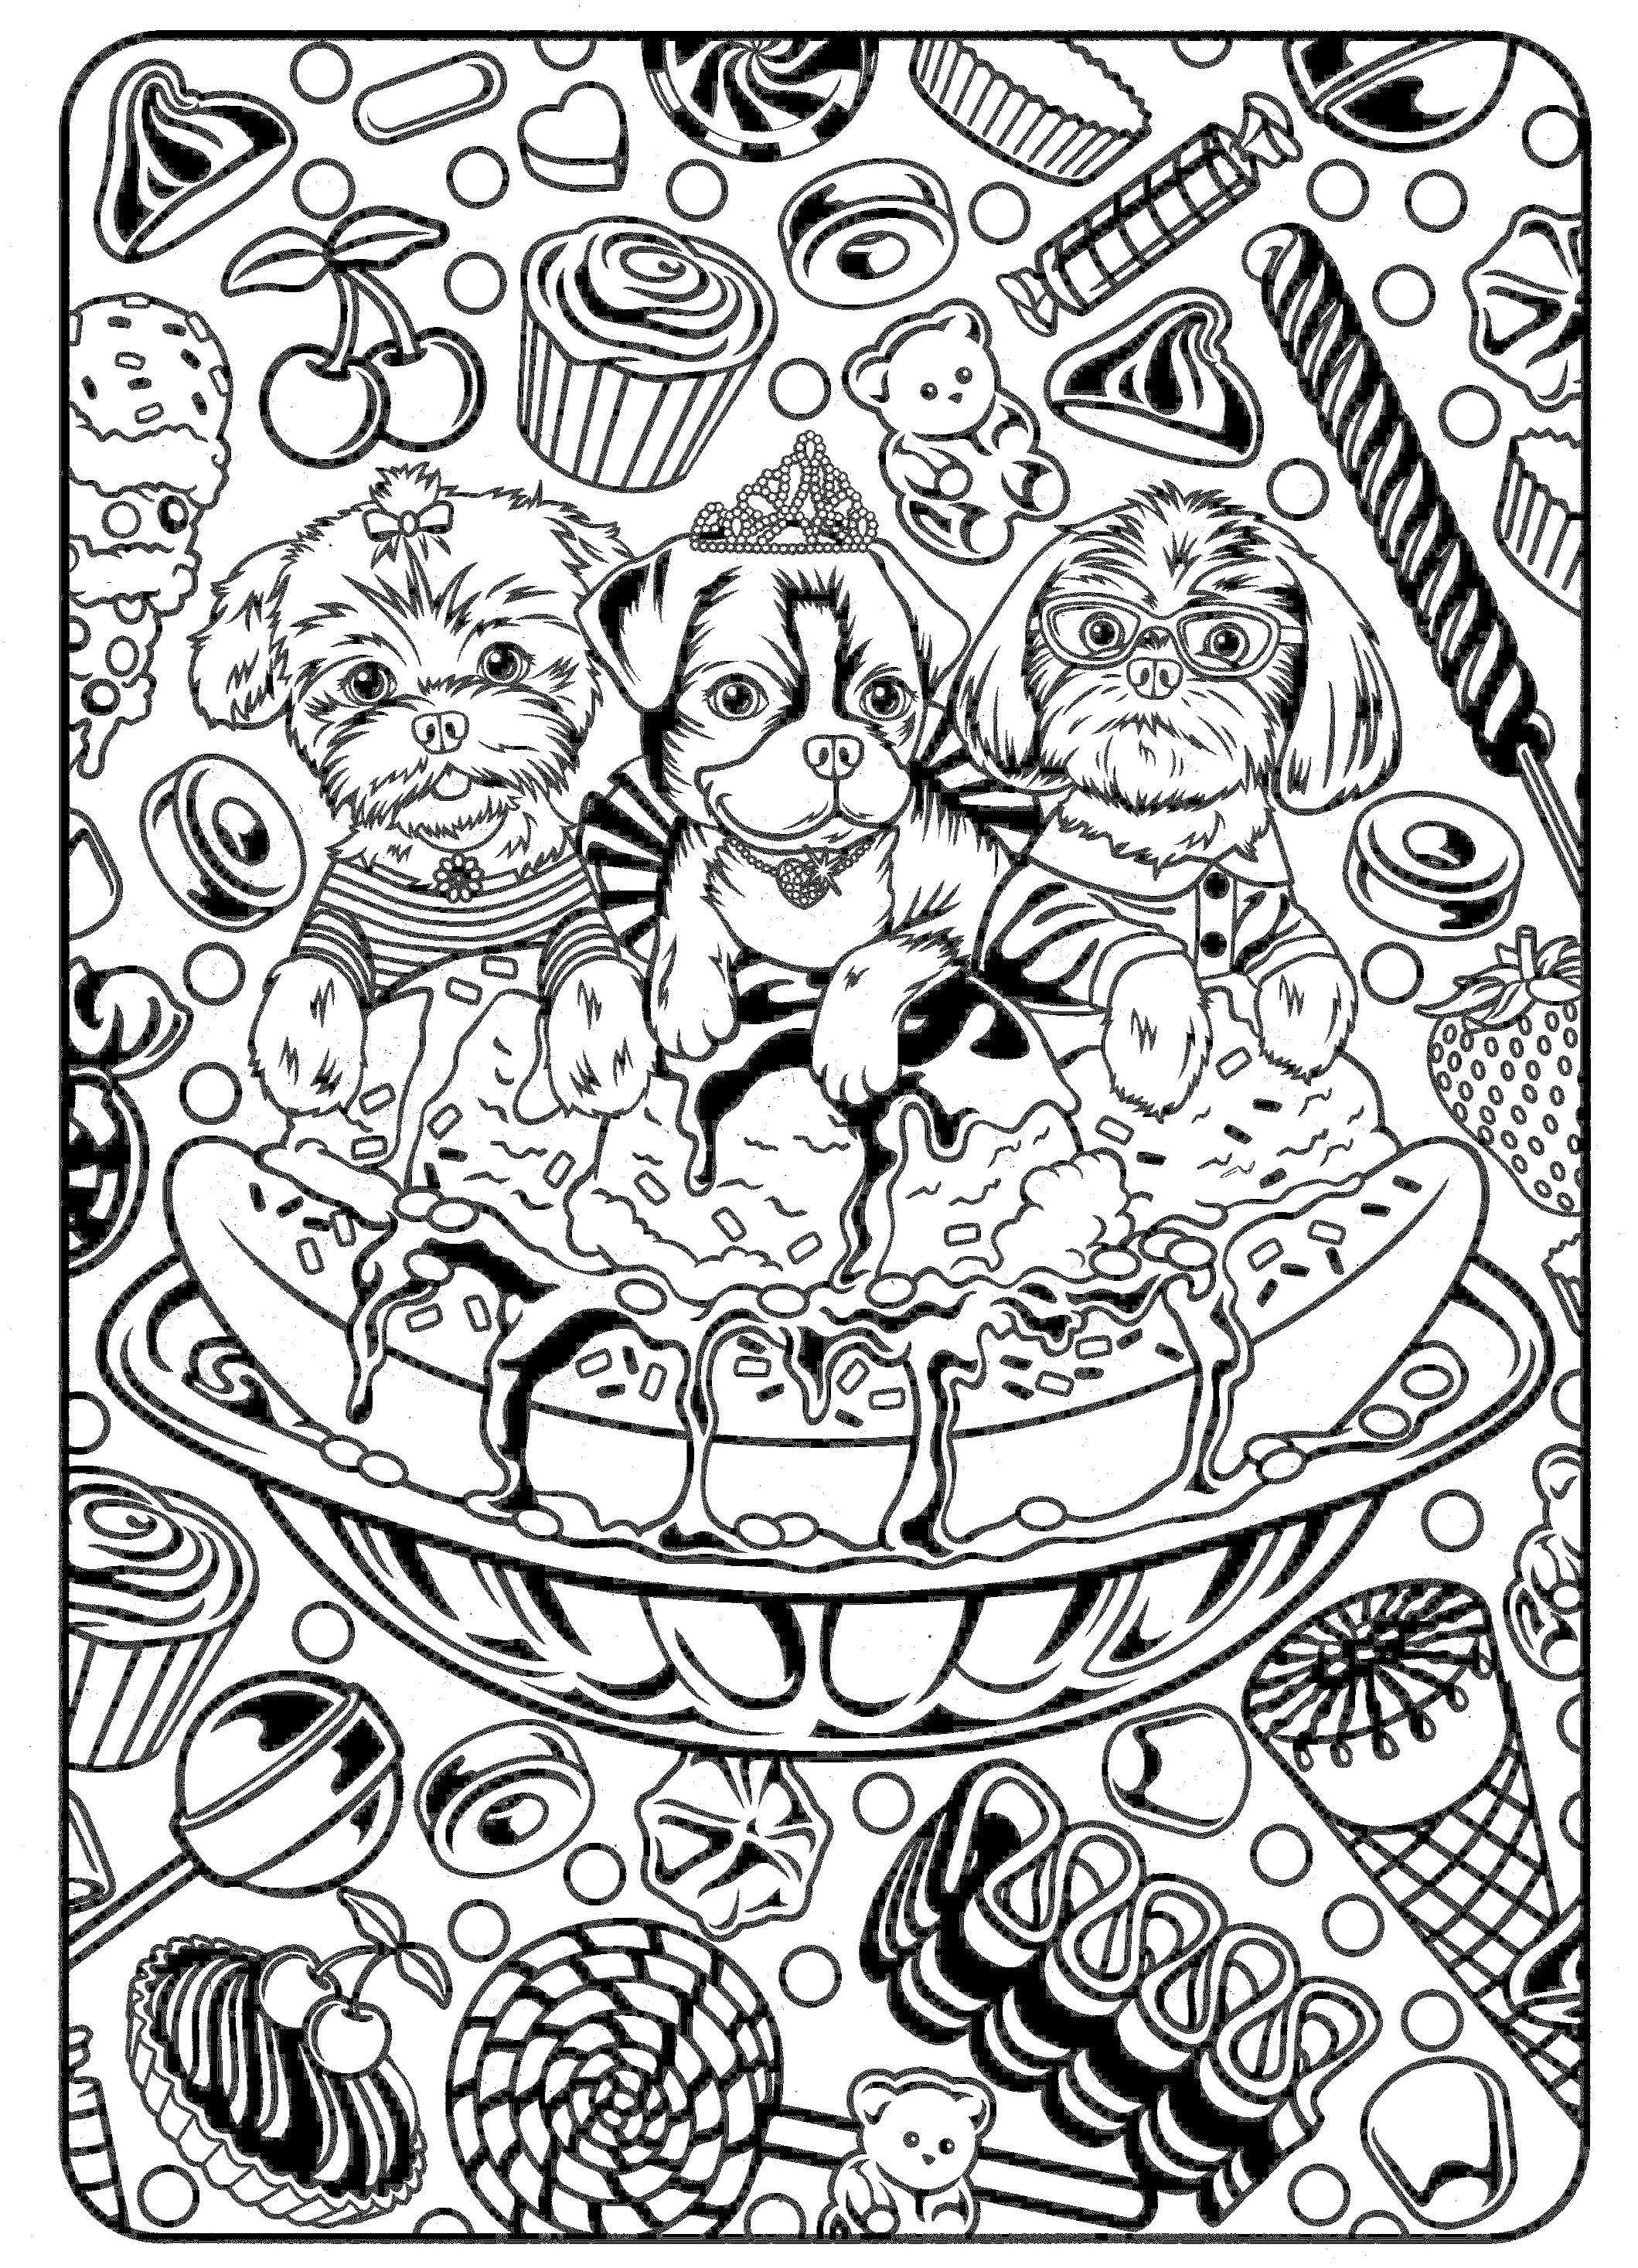 Free Minion Coloring Pages  Gallery 6e - Save it to your computer